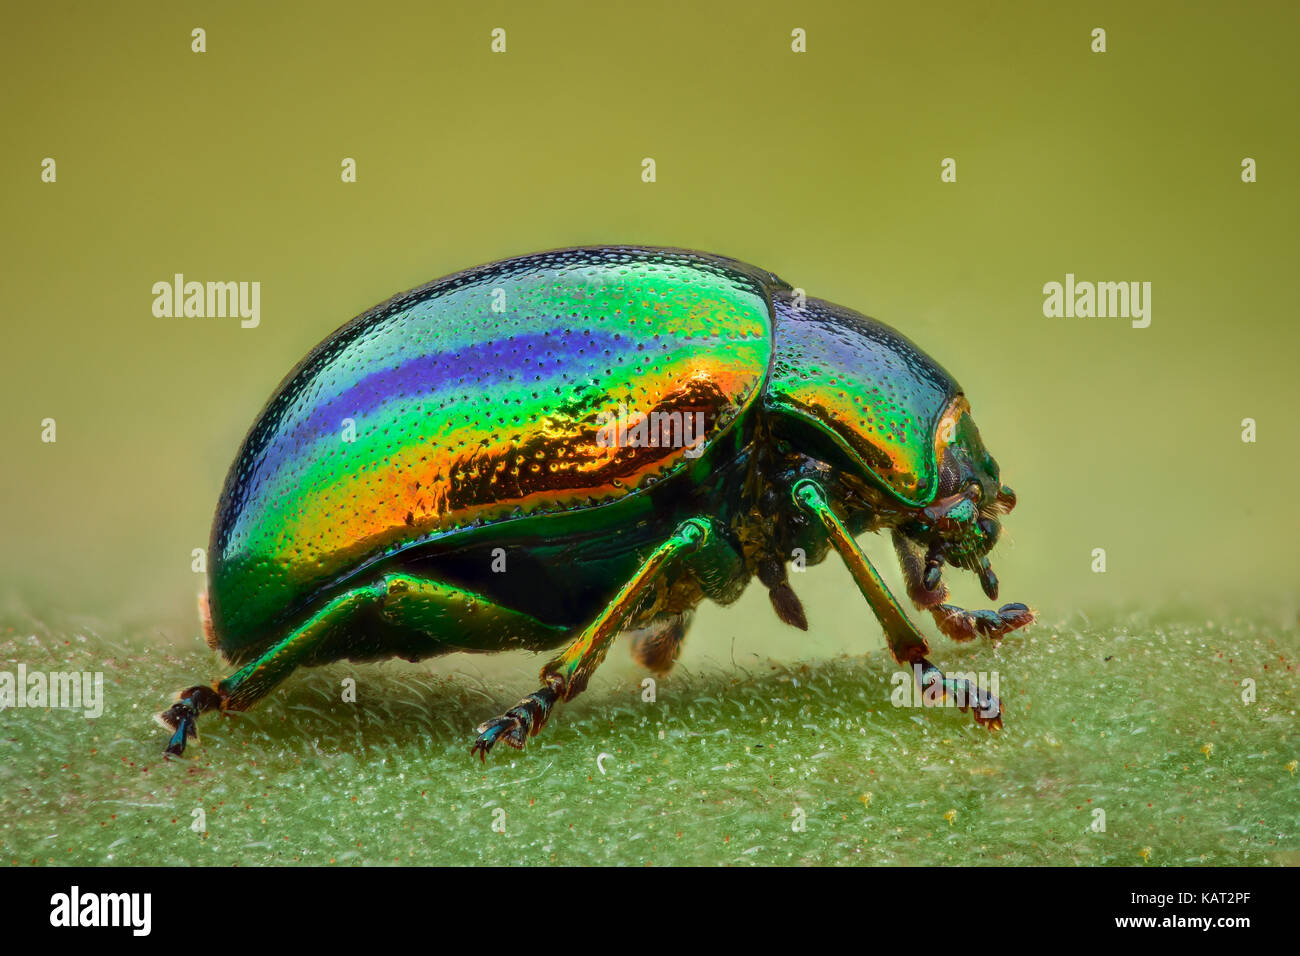 Extreme magnification - Green jewel beetle - Stock Image